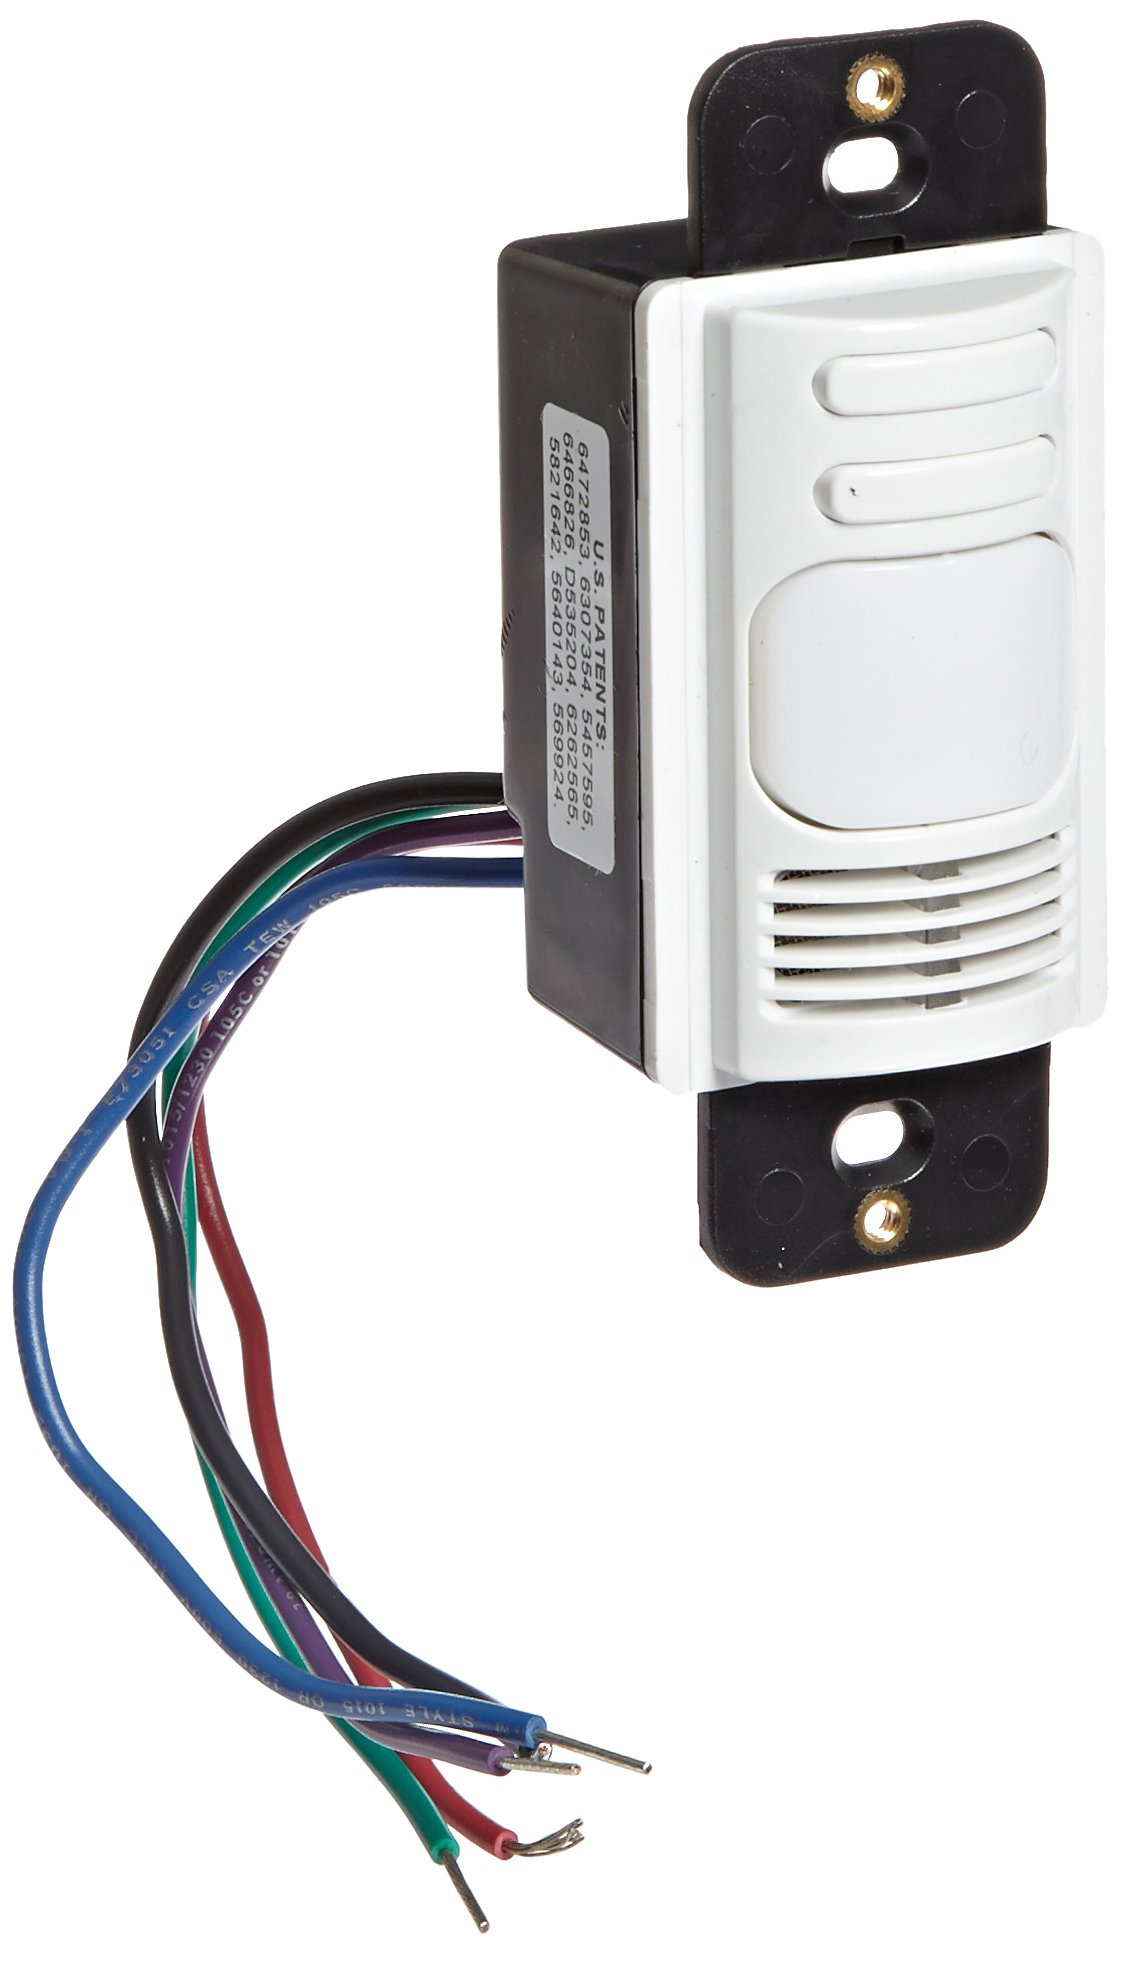 Hubbell AD1277W2 Adaptive Technology Wall Switch, Ultrasonic and Passive Infrared, White 2 Buttons For Manual/Auto Control, 2 Circuits